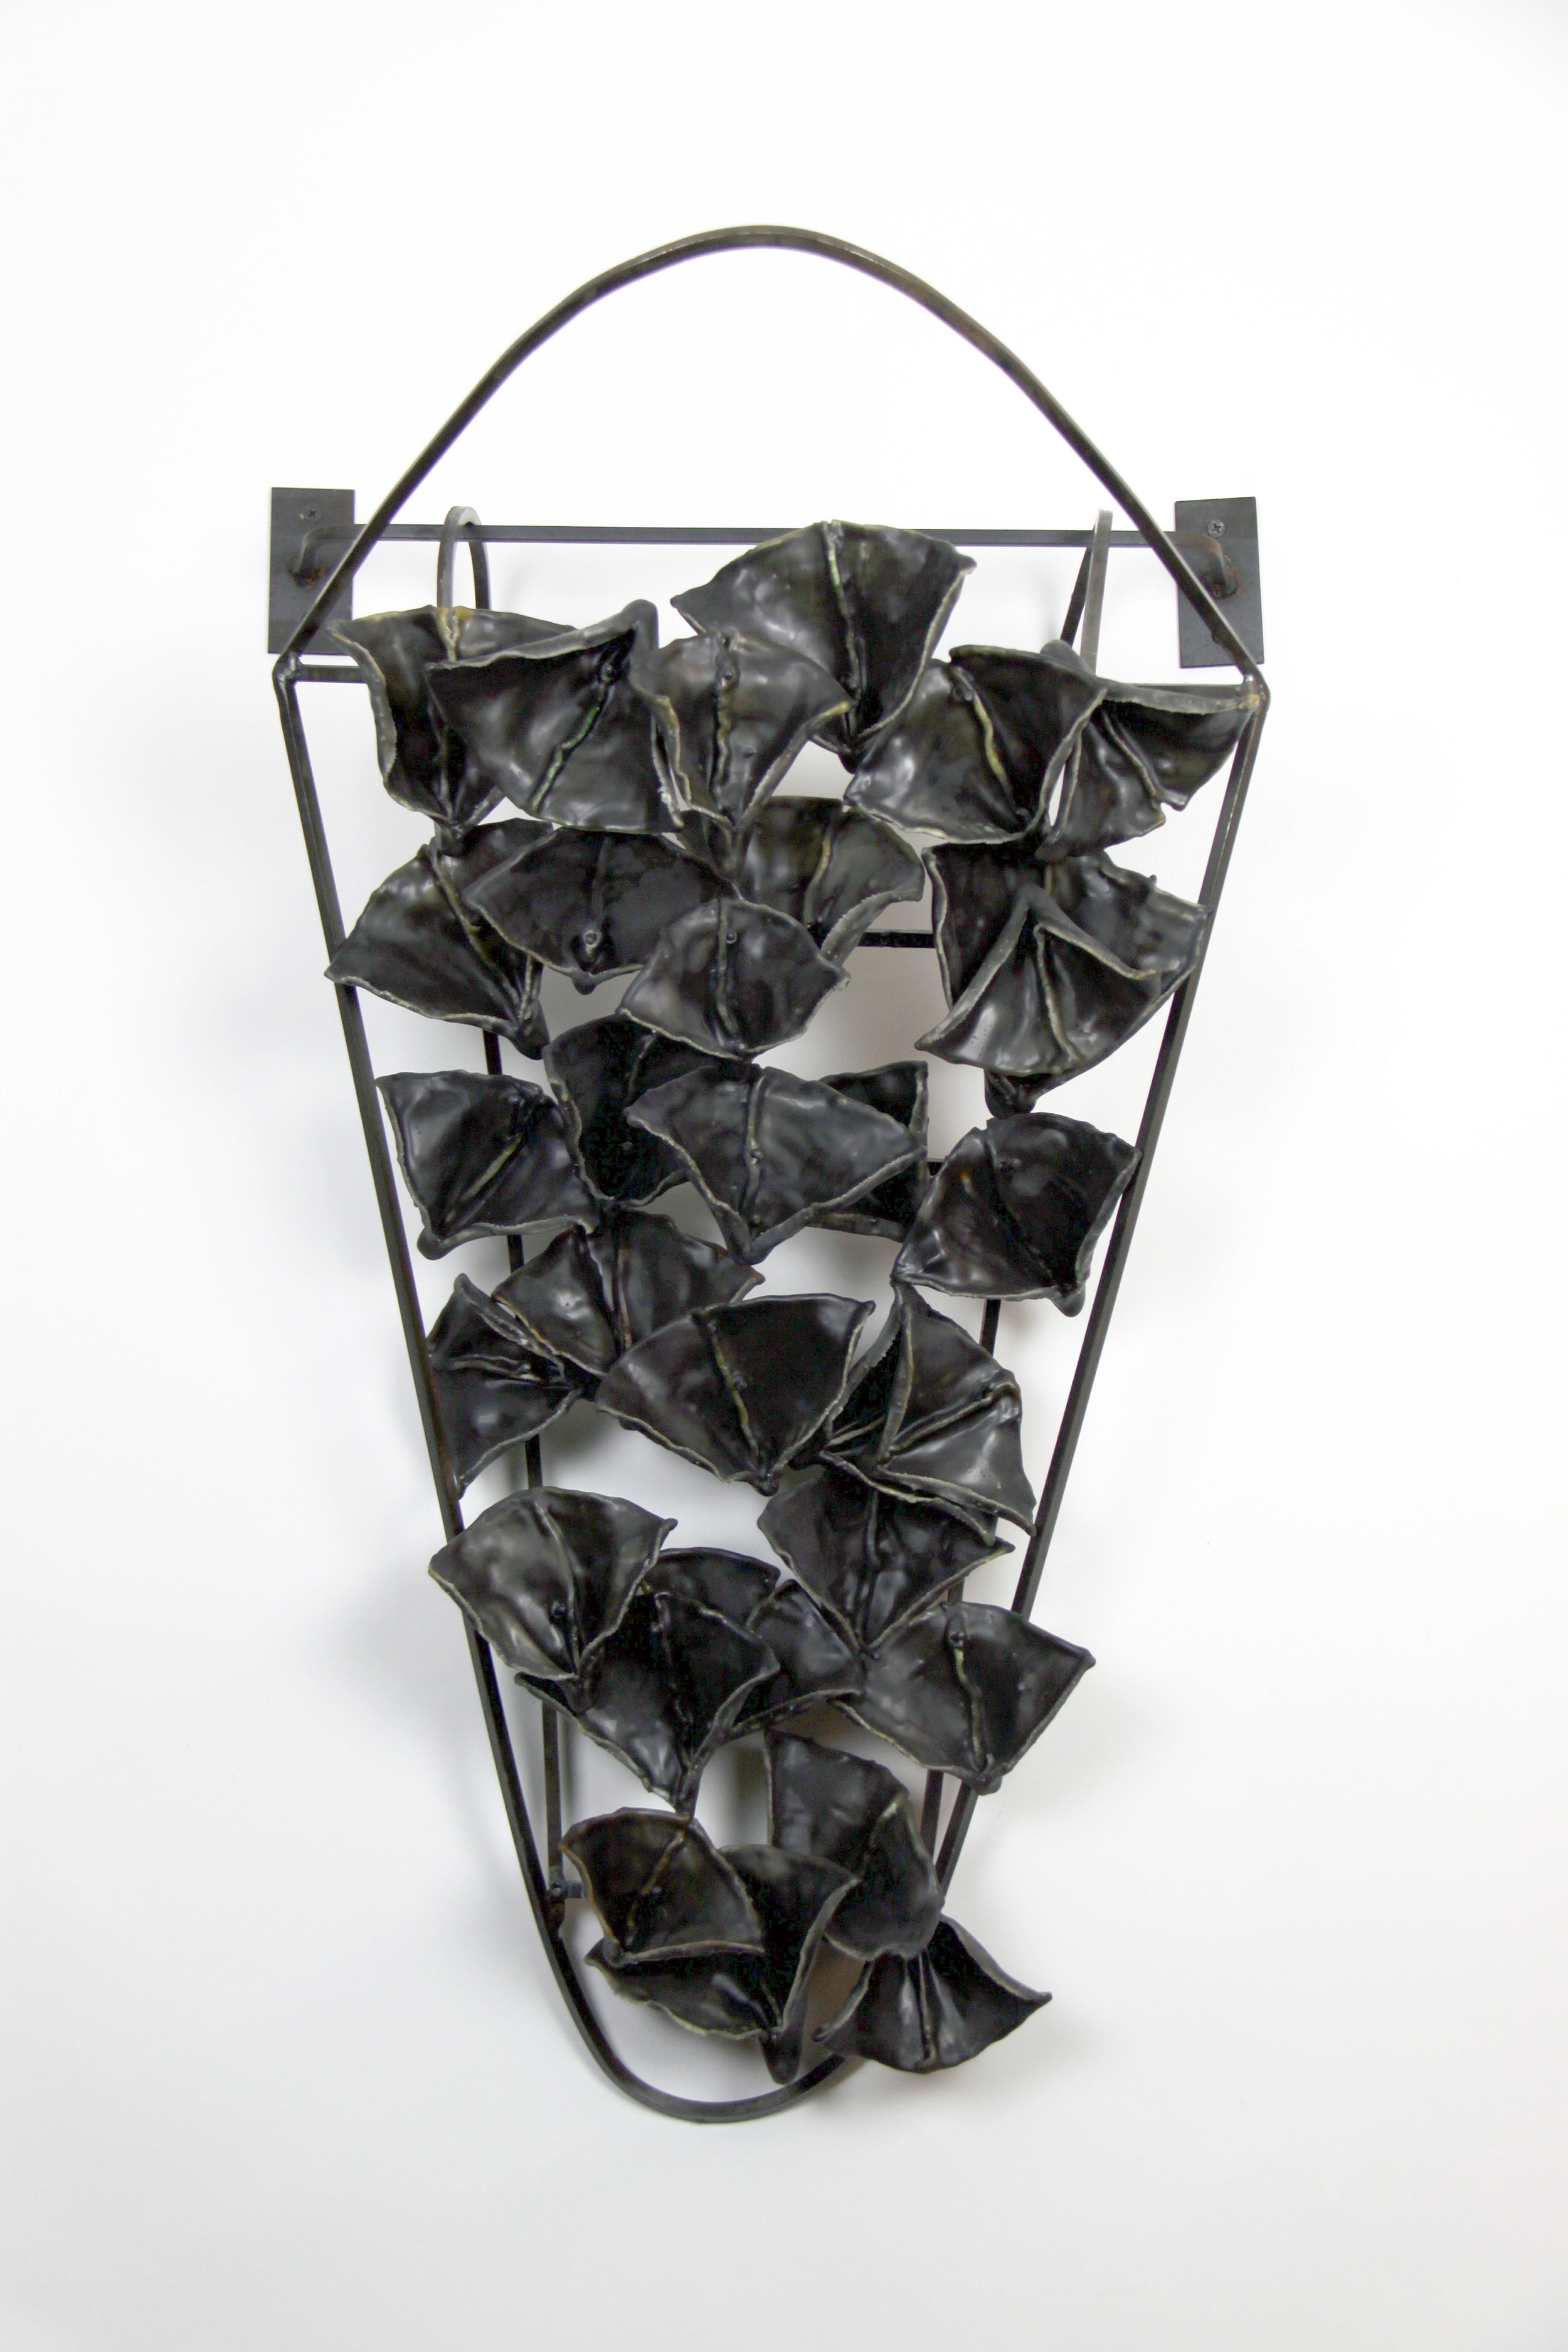 Cradle, 2005, Waxed cloth, welded steel, 32x18x12 inches